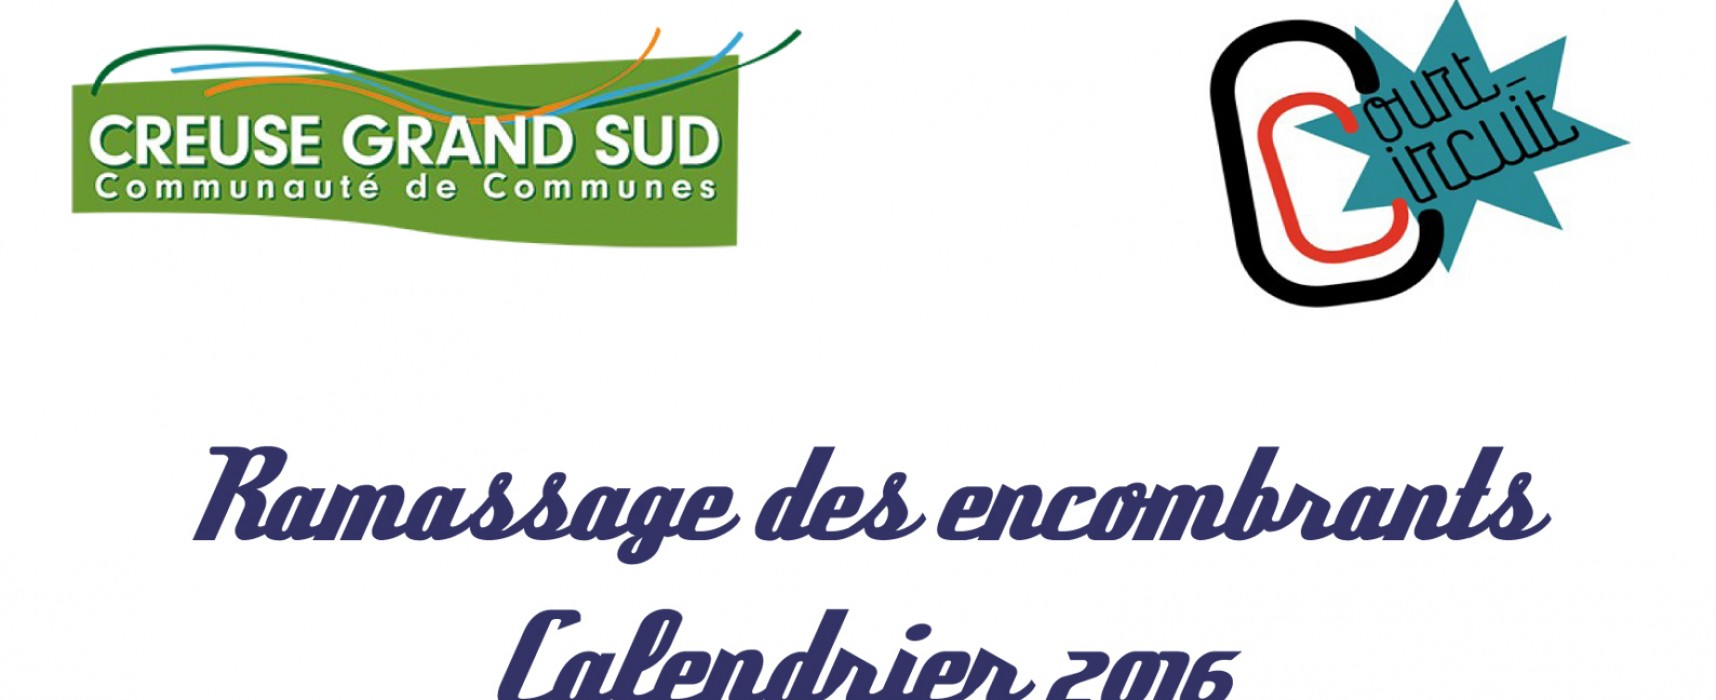 Ramassage des encombrants – Calendrier 2016